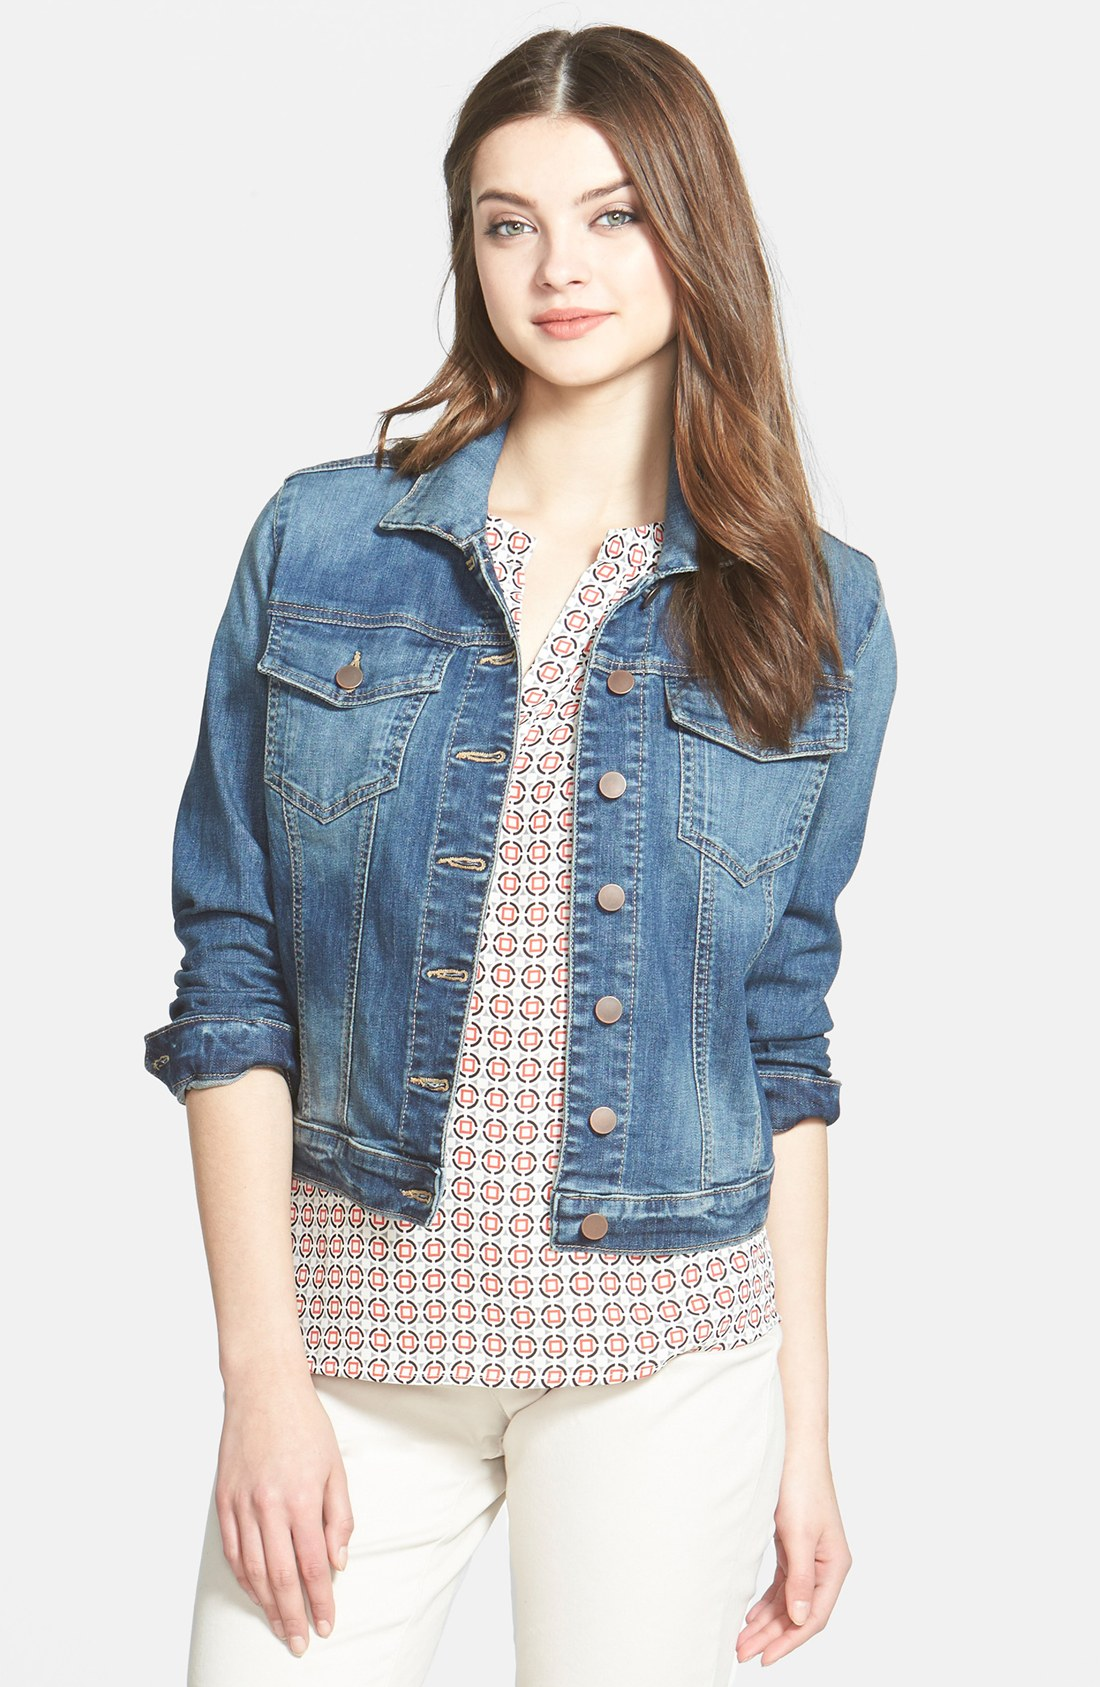 denim vest for women kut from the kloth denim coats u0026 jackets for women | nordstrom BEKANCW